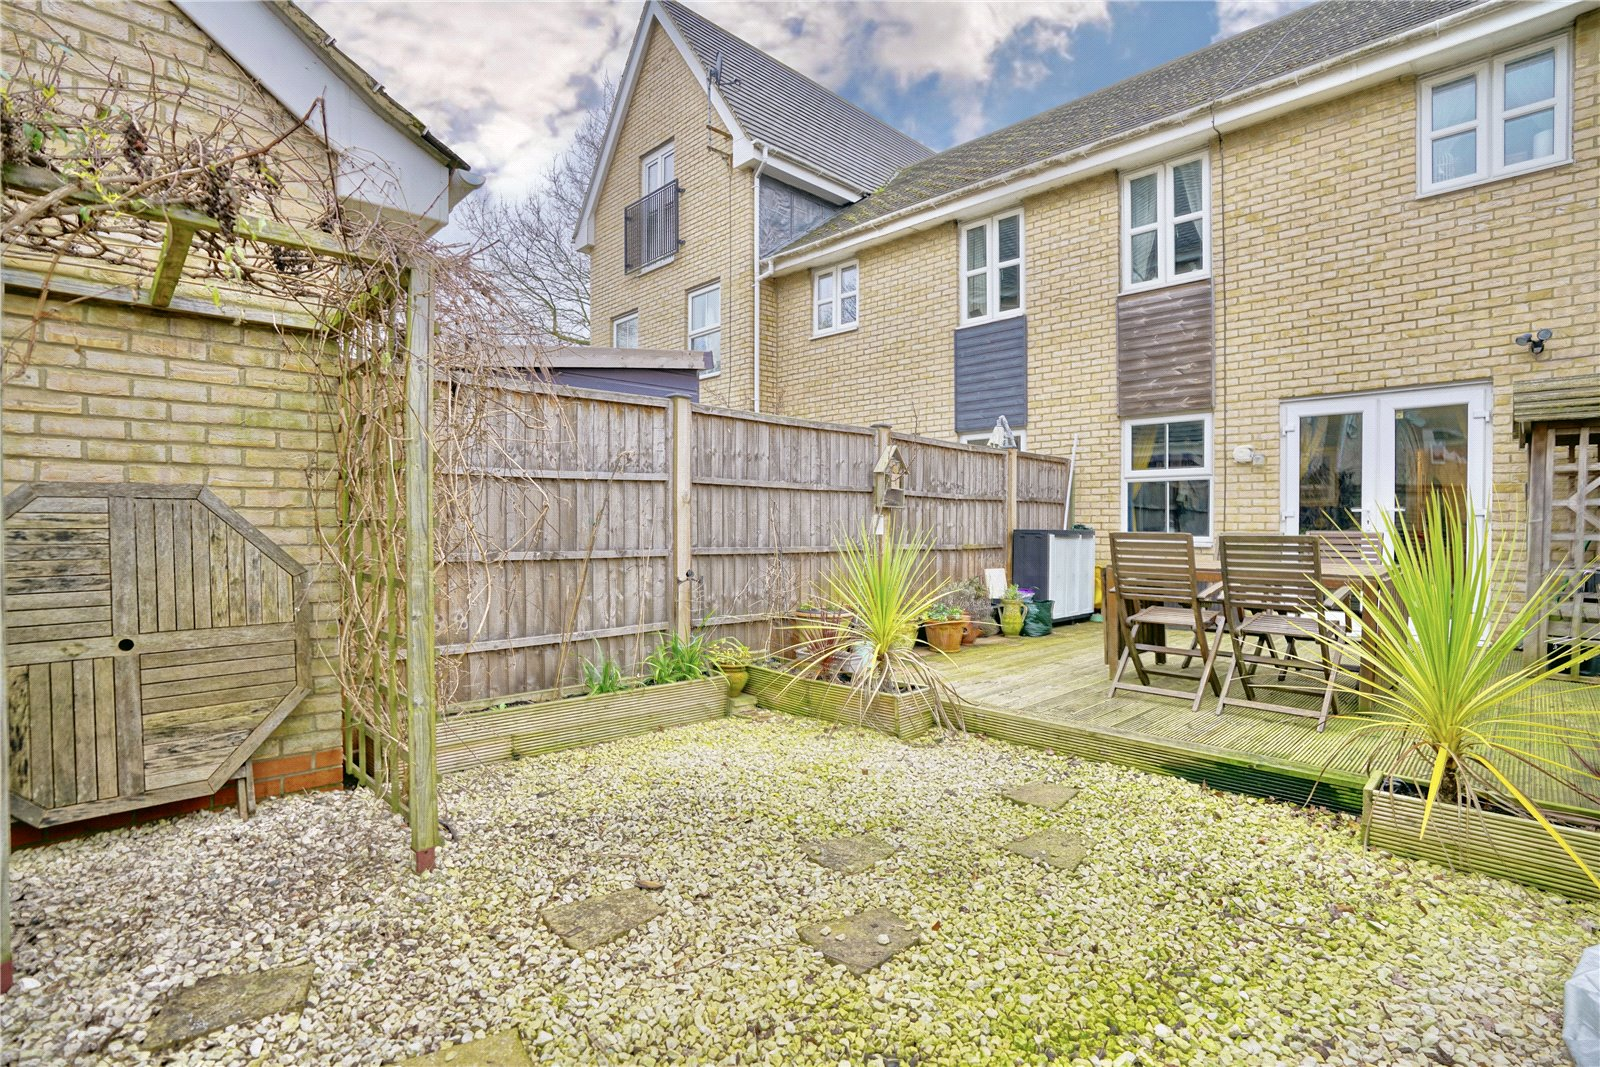 3 bed house for sale in Linton Close, Eaton Socon 7